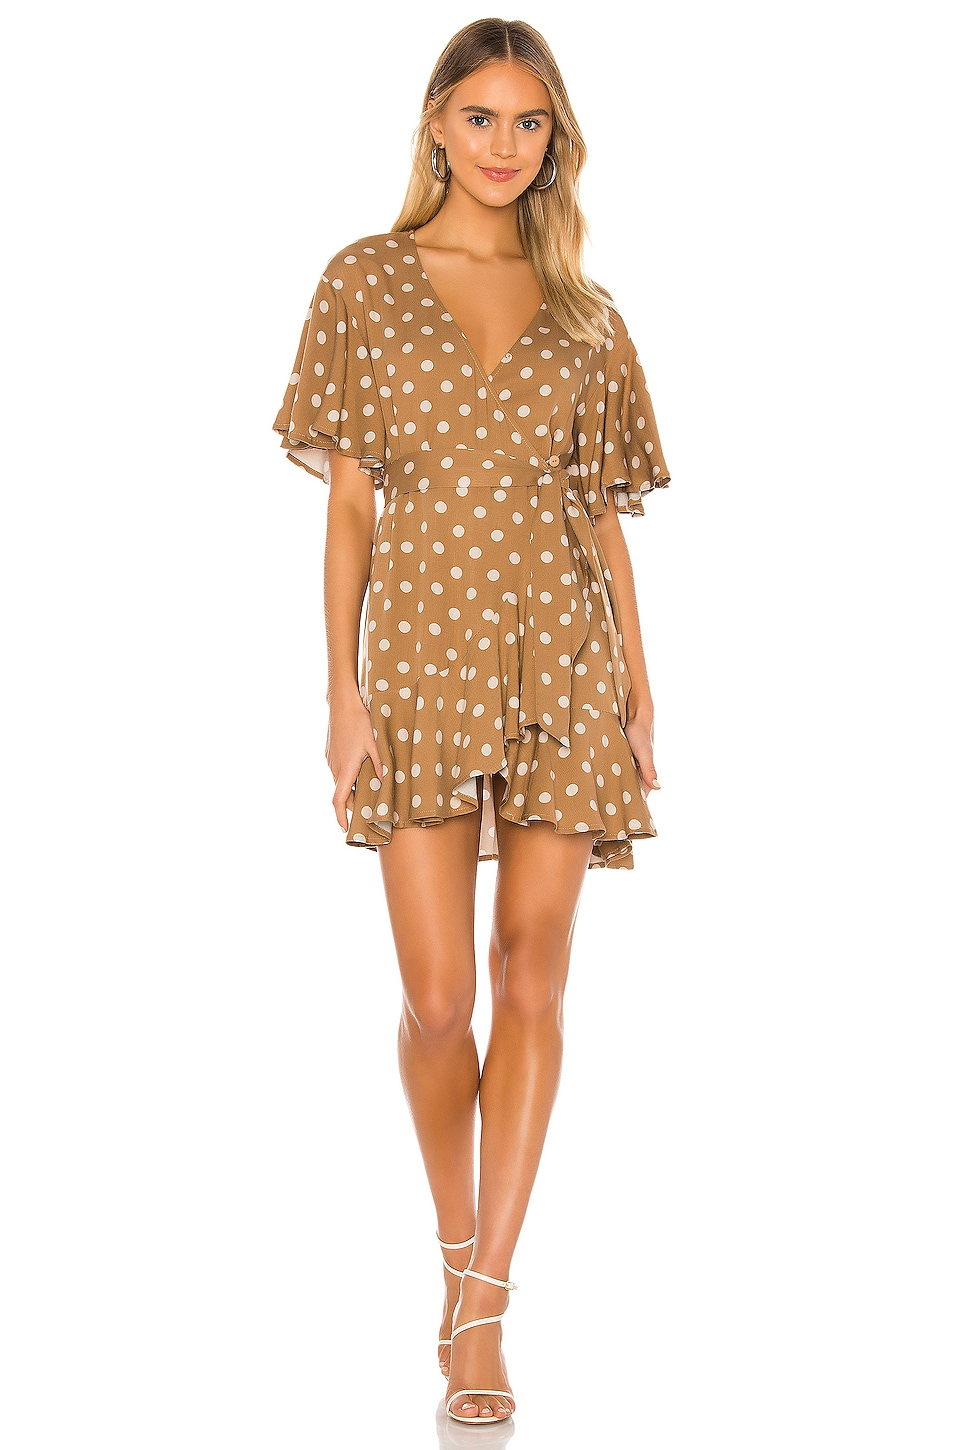 BB Dakota Butterscotch Bae Dress in Butterscotch